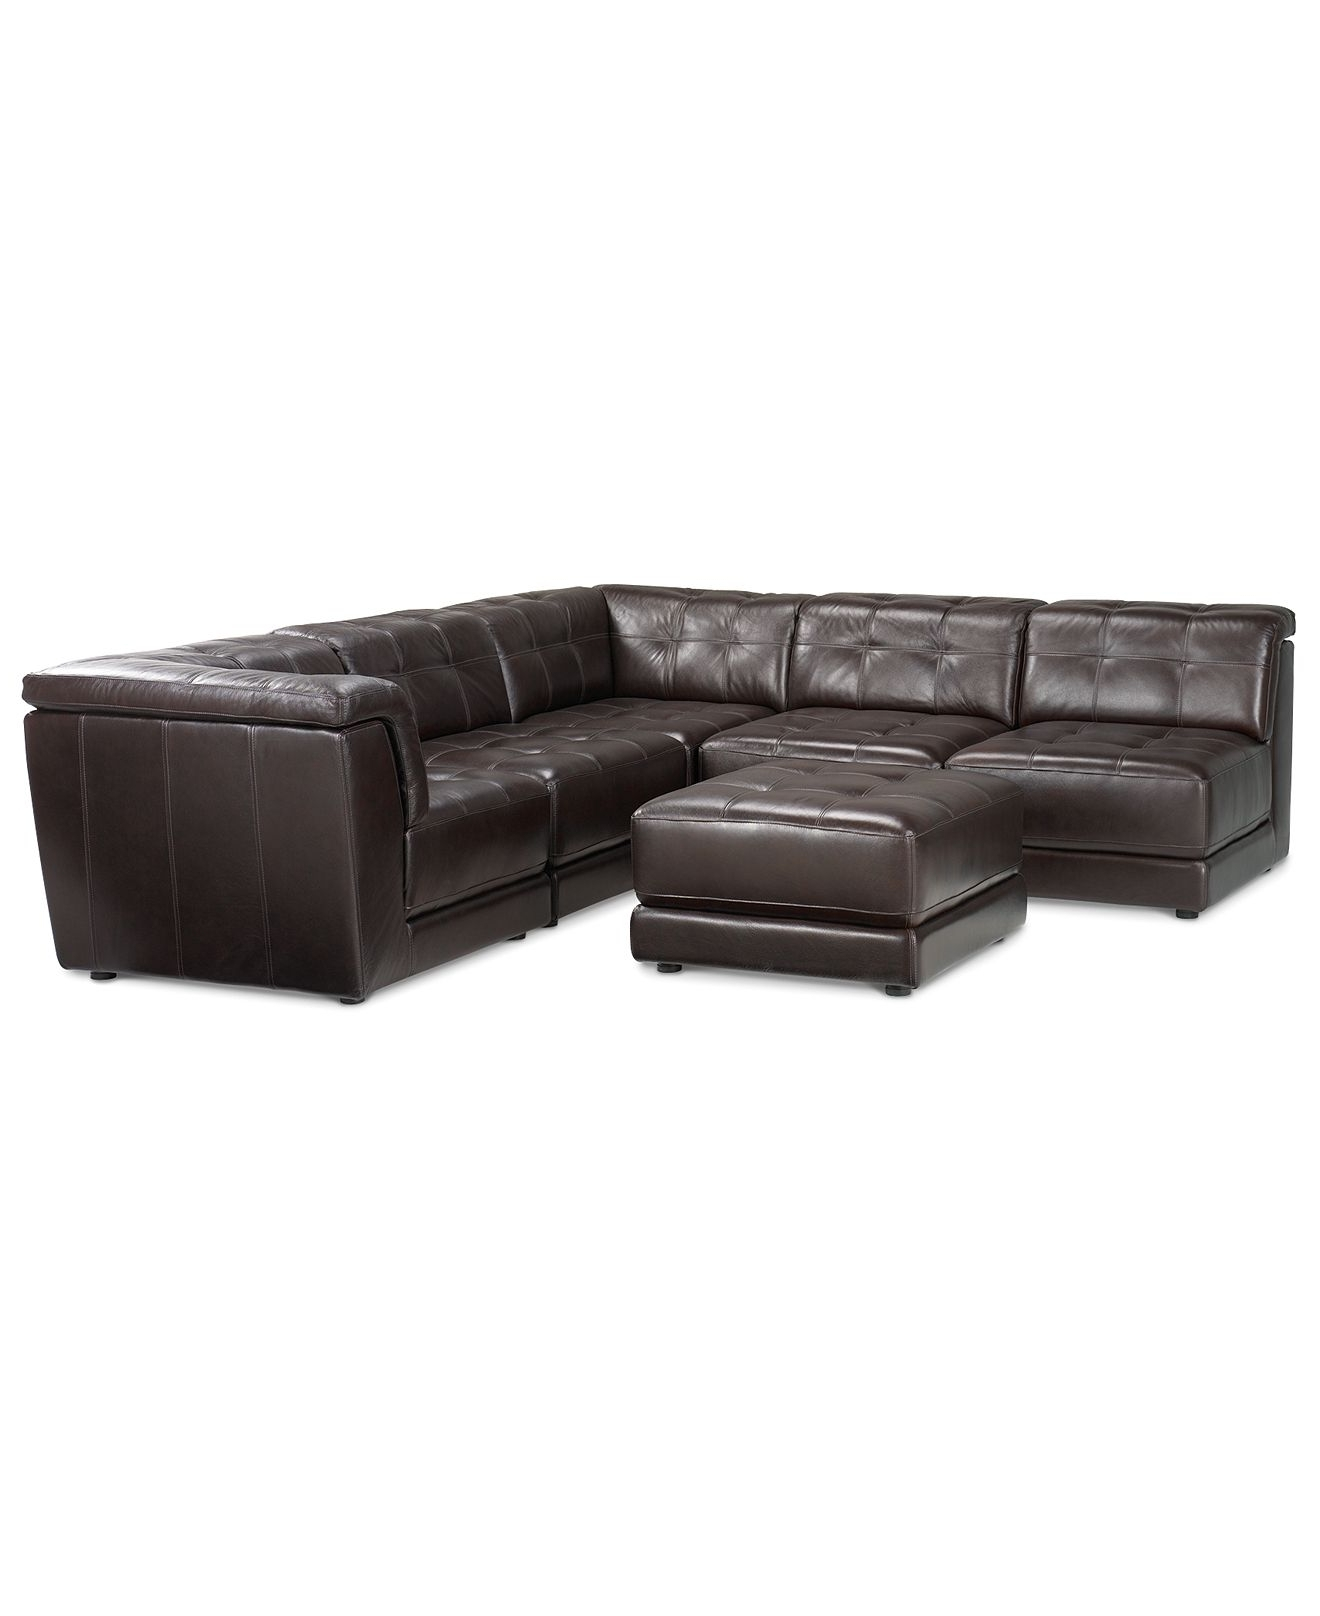 6 Piece Leather Sectional Sofas For Most Current Macy's Stacey Leather Sectional Sofa, 6 Piece Modular (3 Armless (Gallery 9 of 20)